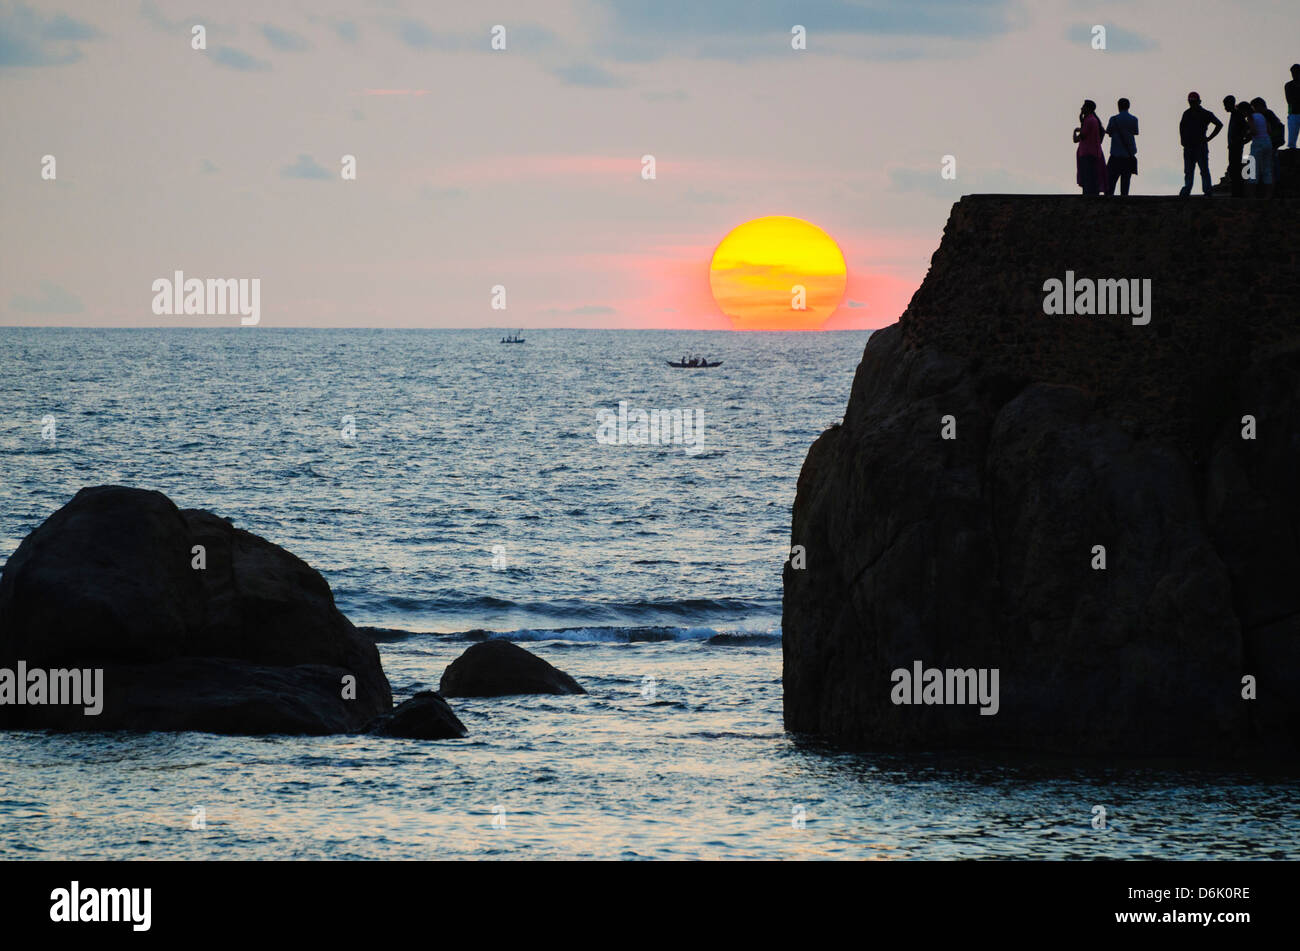 Sunset on the Indian Ocean, Galle, Southern Province, Sri Lanka, Asia - Stock Image